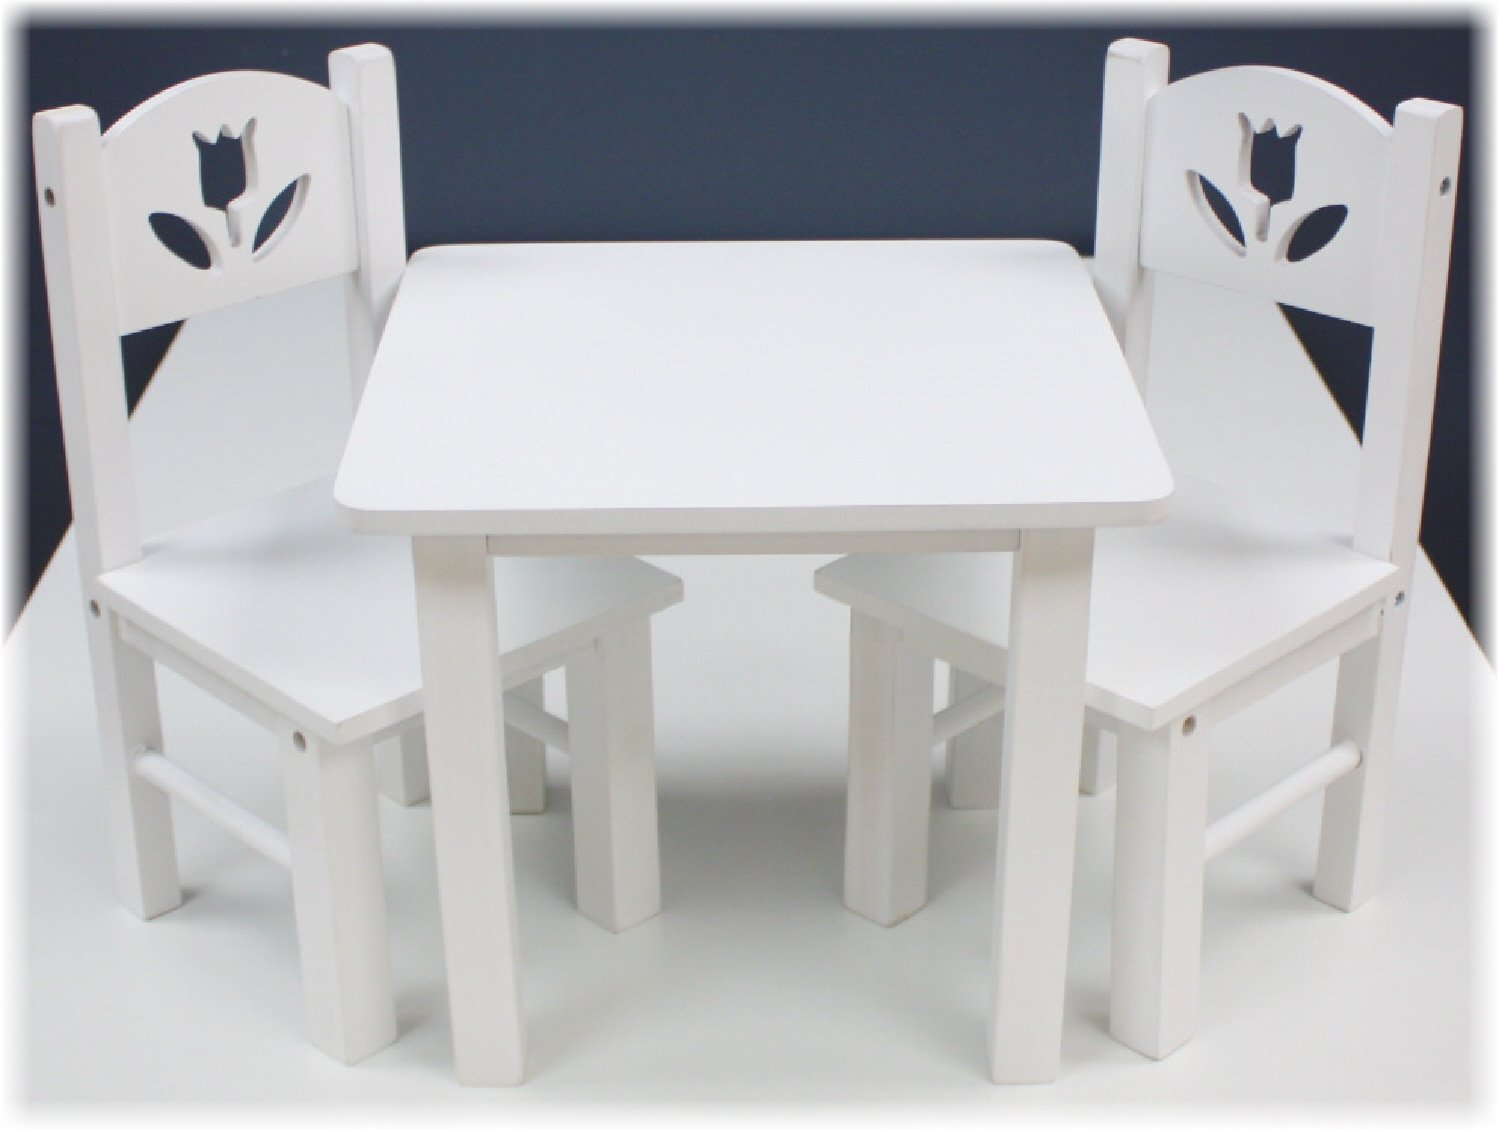 18 Inch Doll Furniture Wooden Table And Chairs Set 18 White Floral Fits Ebay